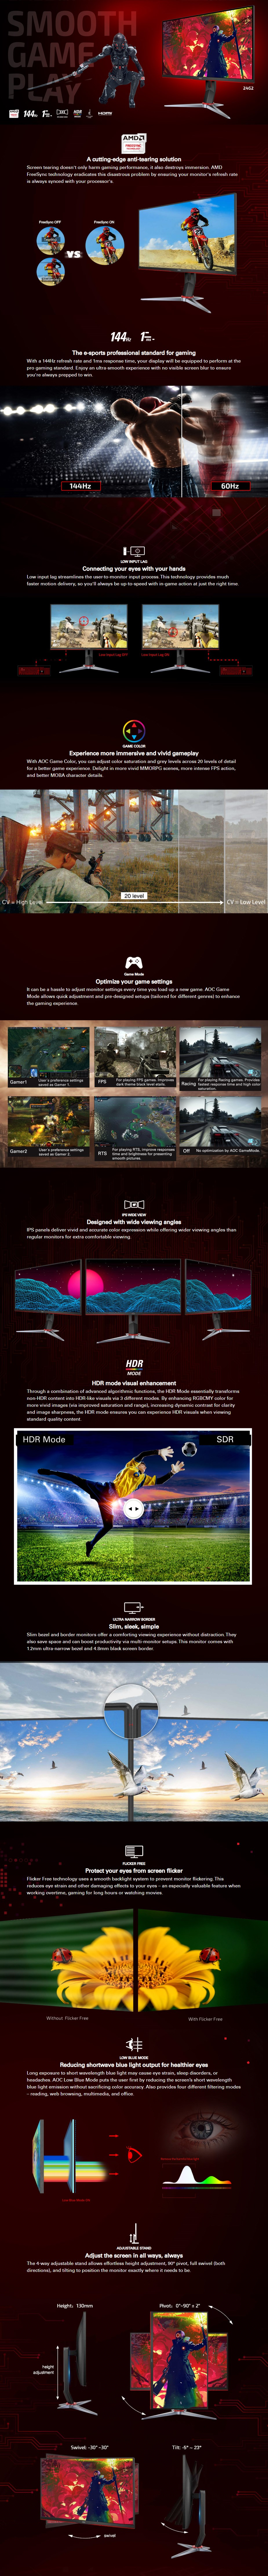 aoc-24g2-238-144hz-1ms-hdr-freesync-ips-gaming-monitor-ac28632-1.jpg